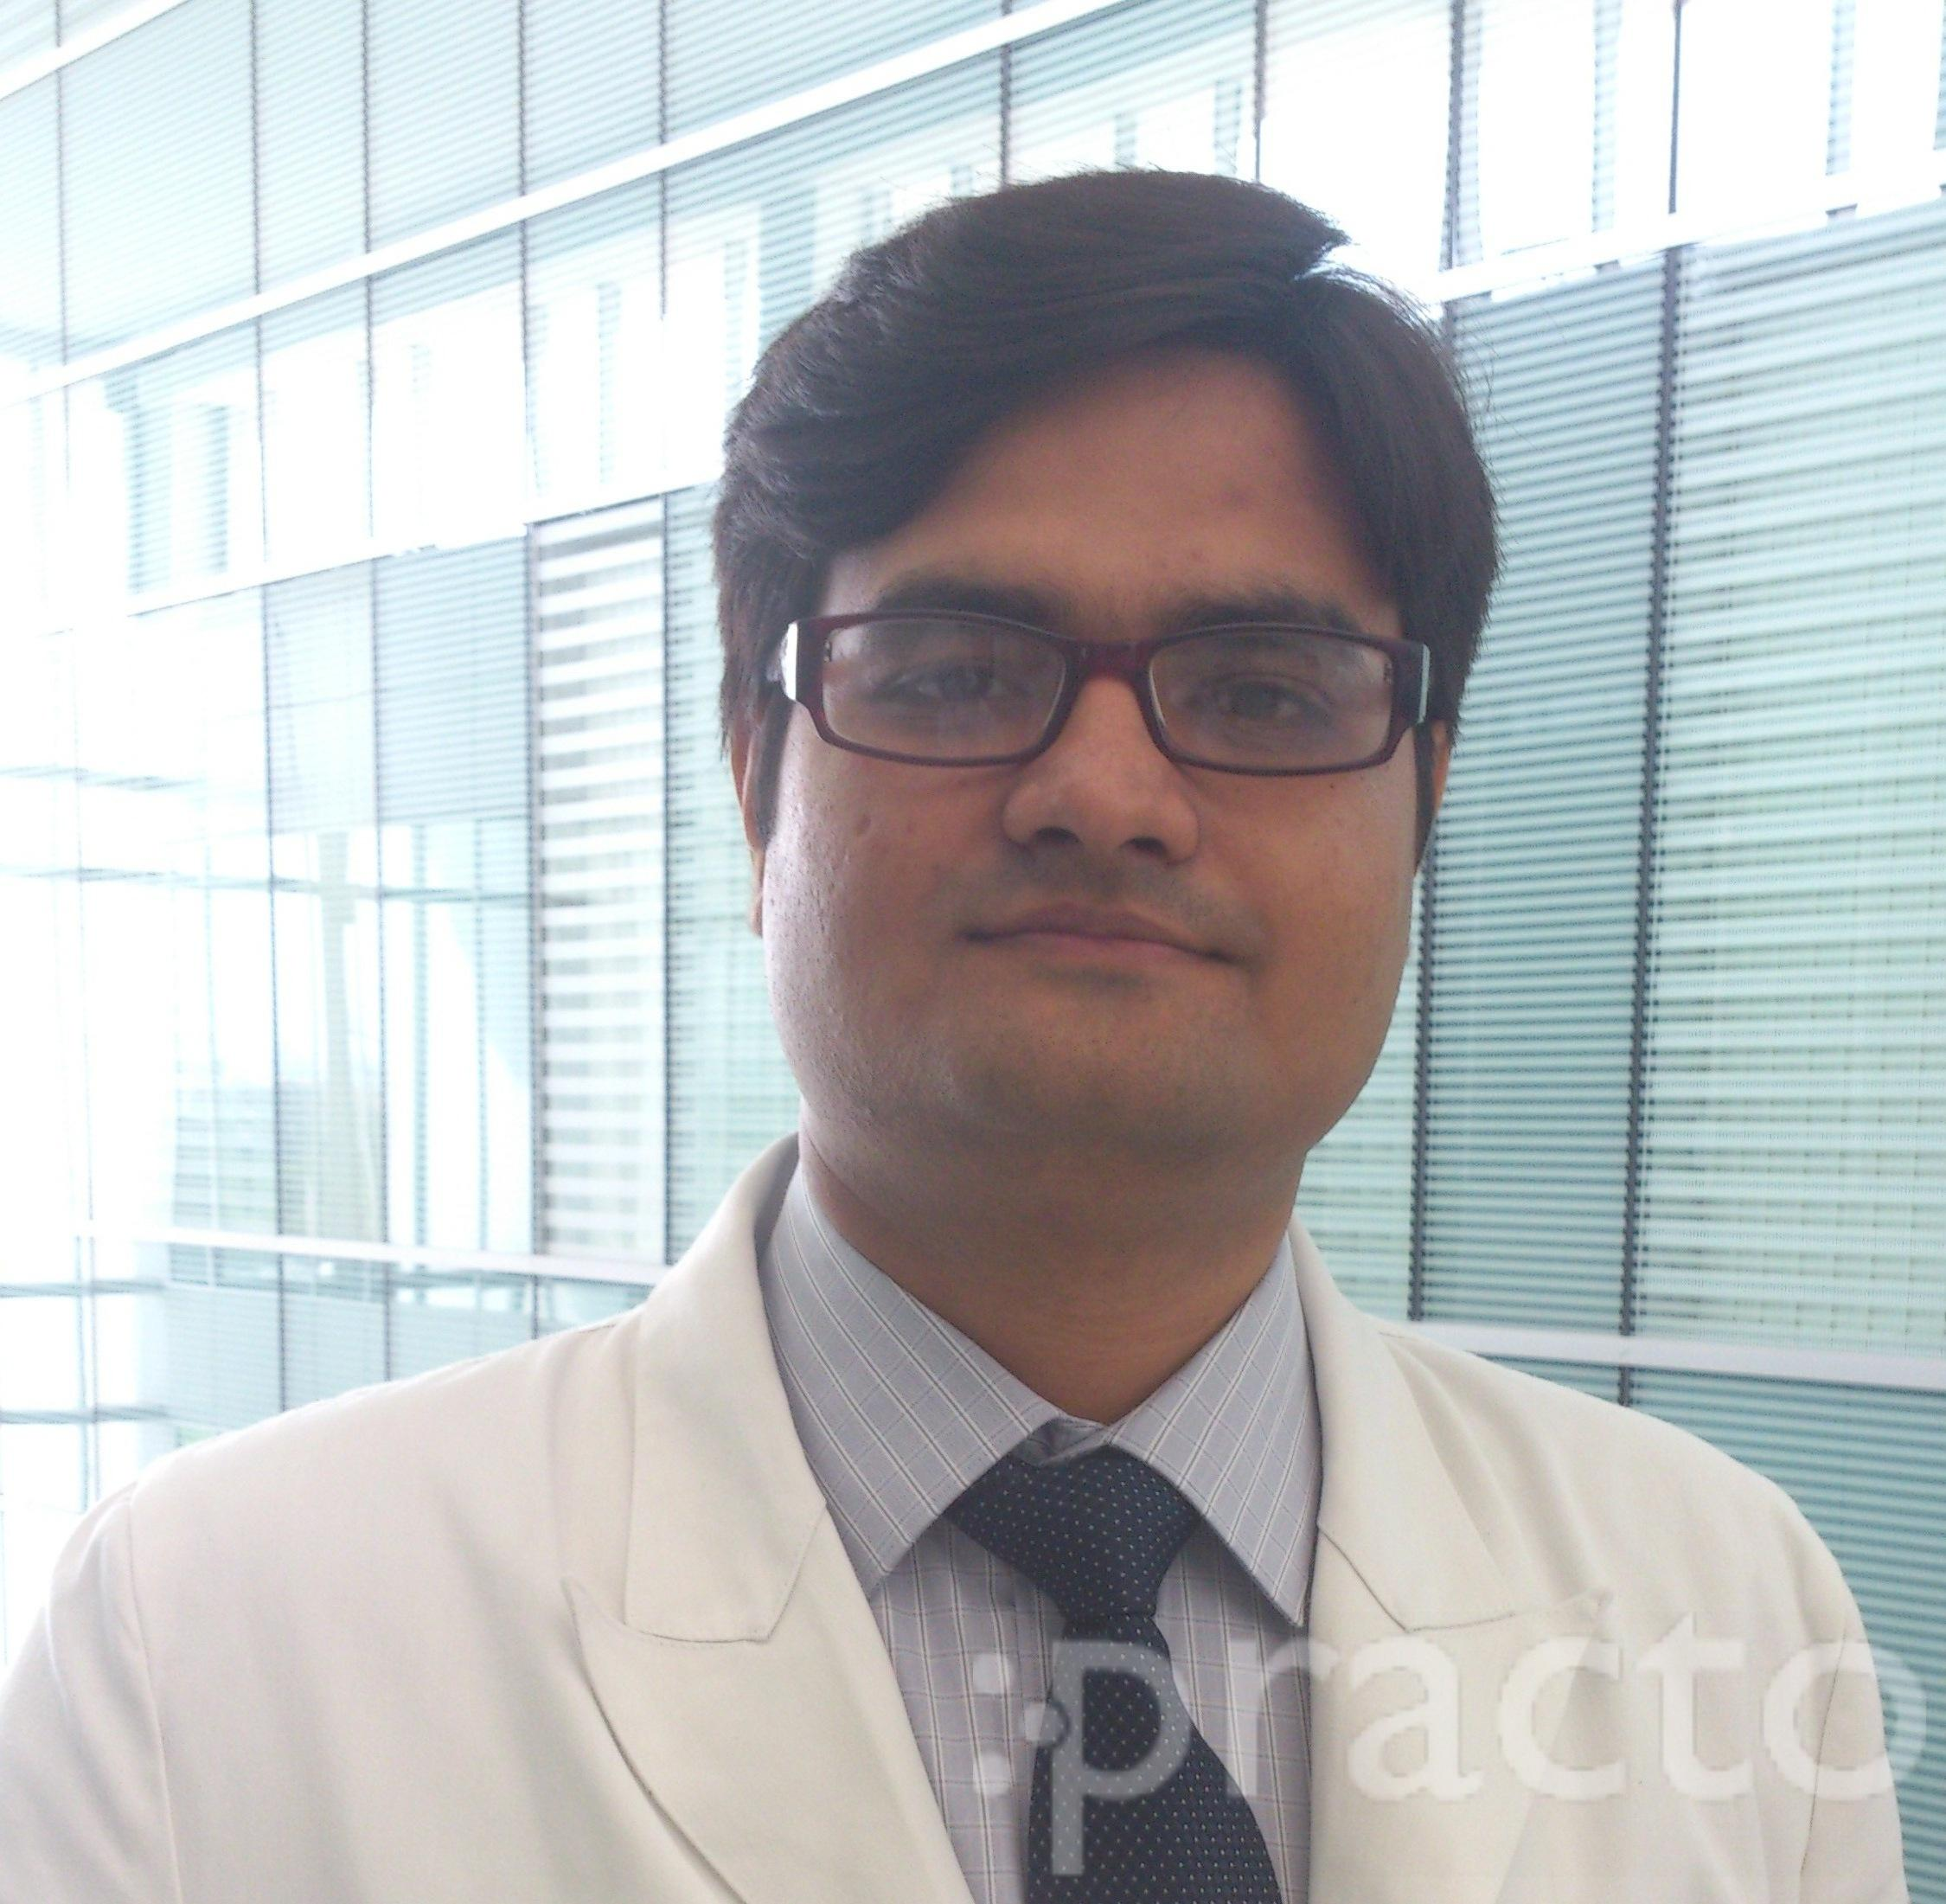 Dr. Ankur A. Patel - Vascular Surgeon